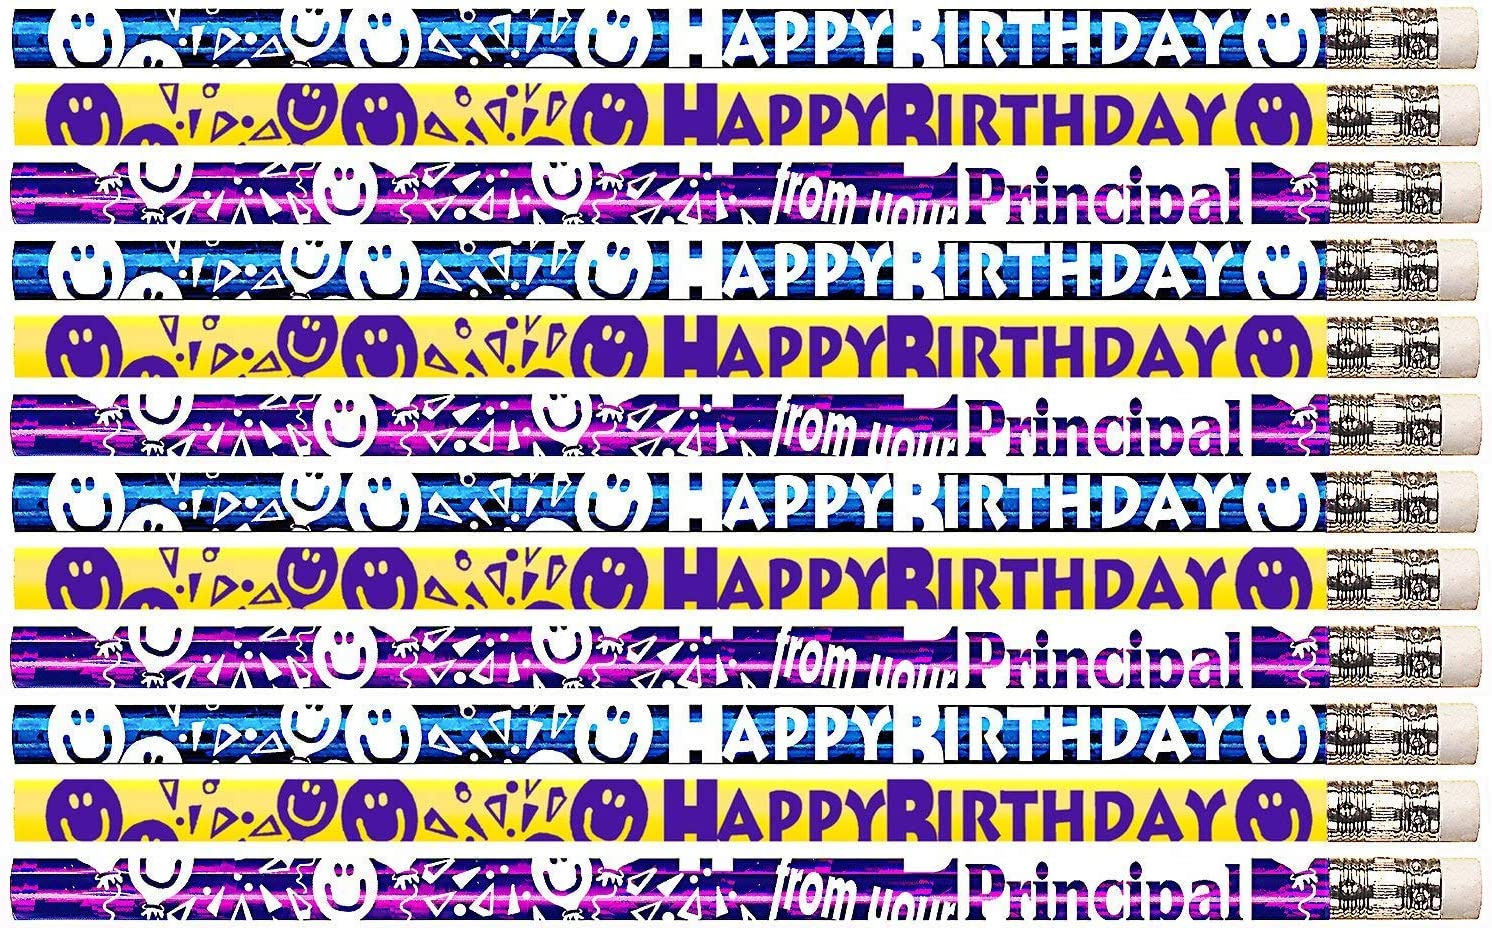 D1444 Happy Birthday From Your Principal - 36 Qty Package - Birthday Pencils - Express Pencils